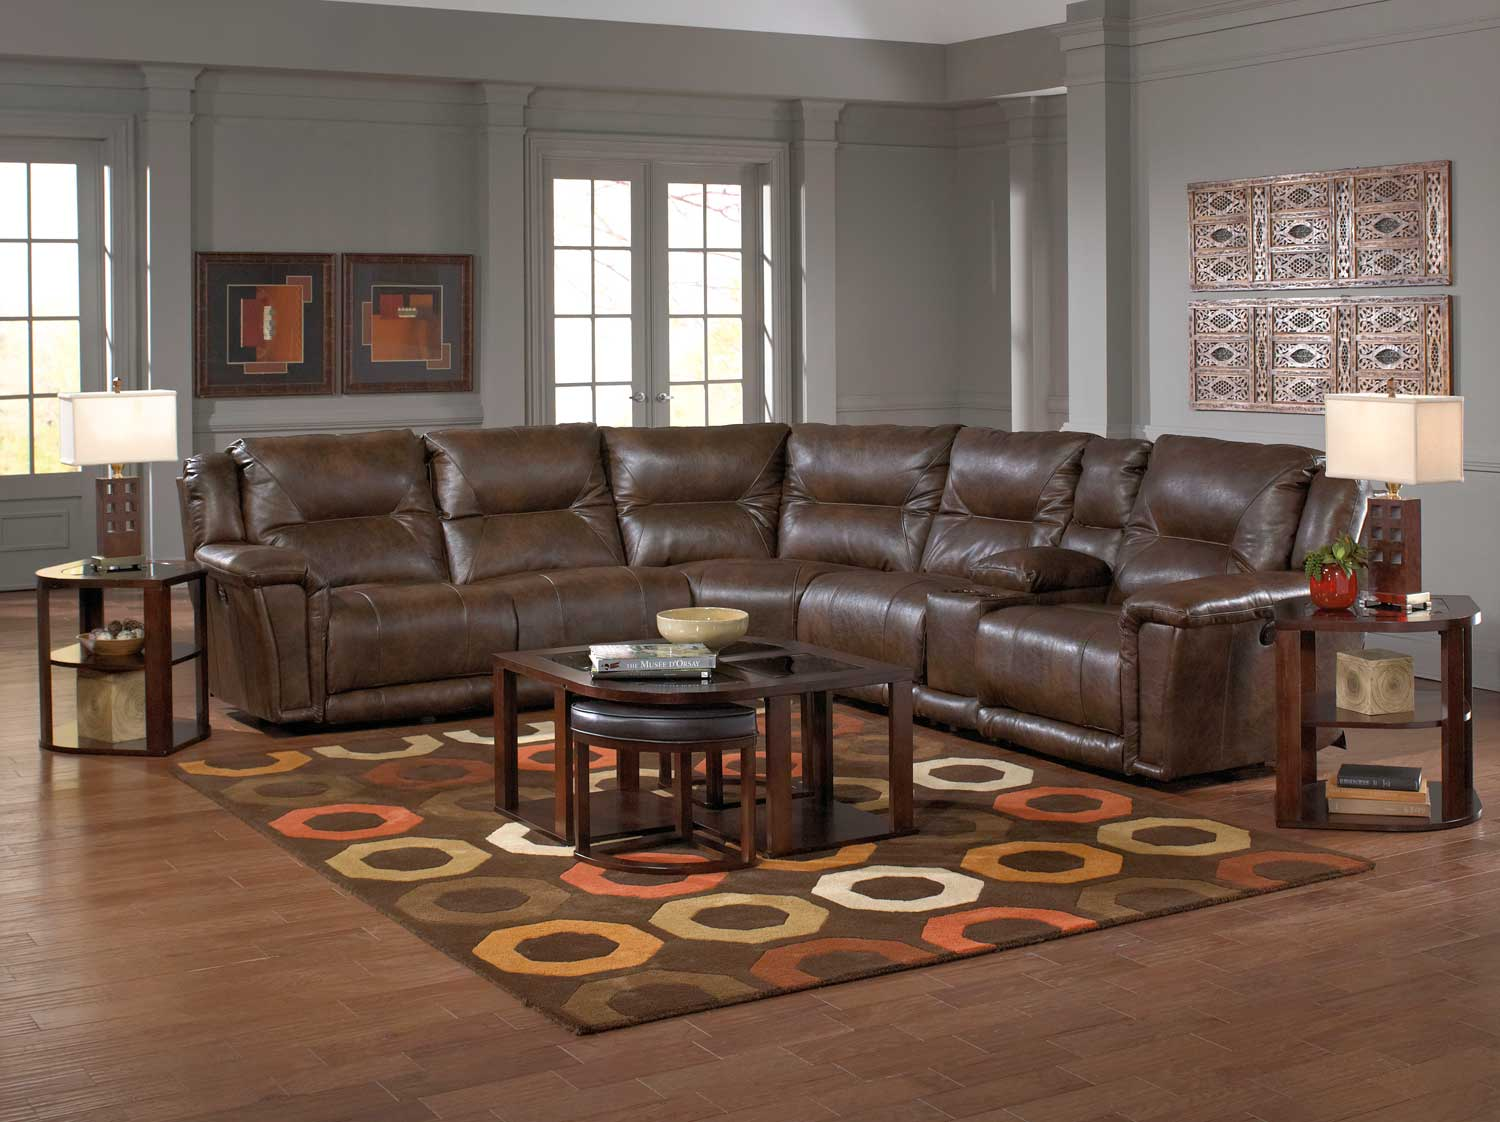 CatNapper Montgomery Sectional Sofa Set 2   Timber